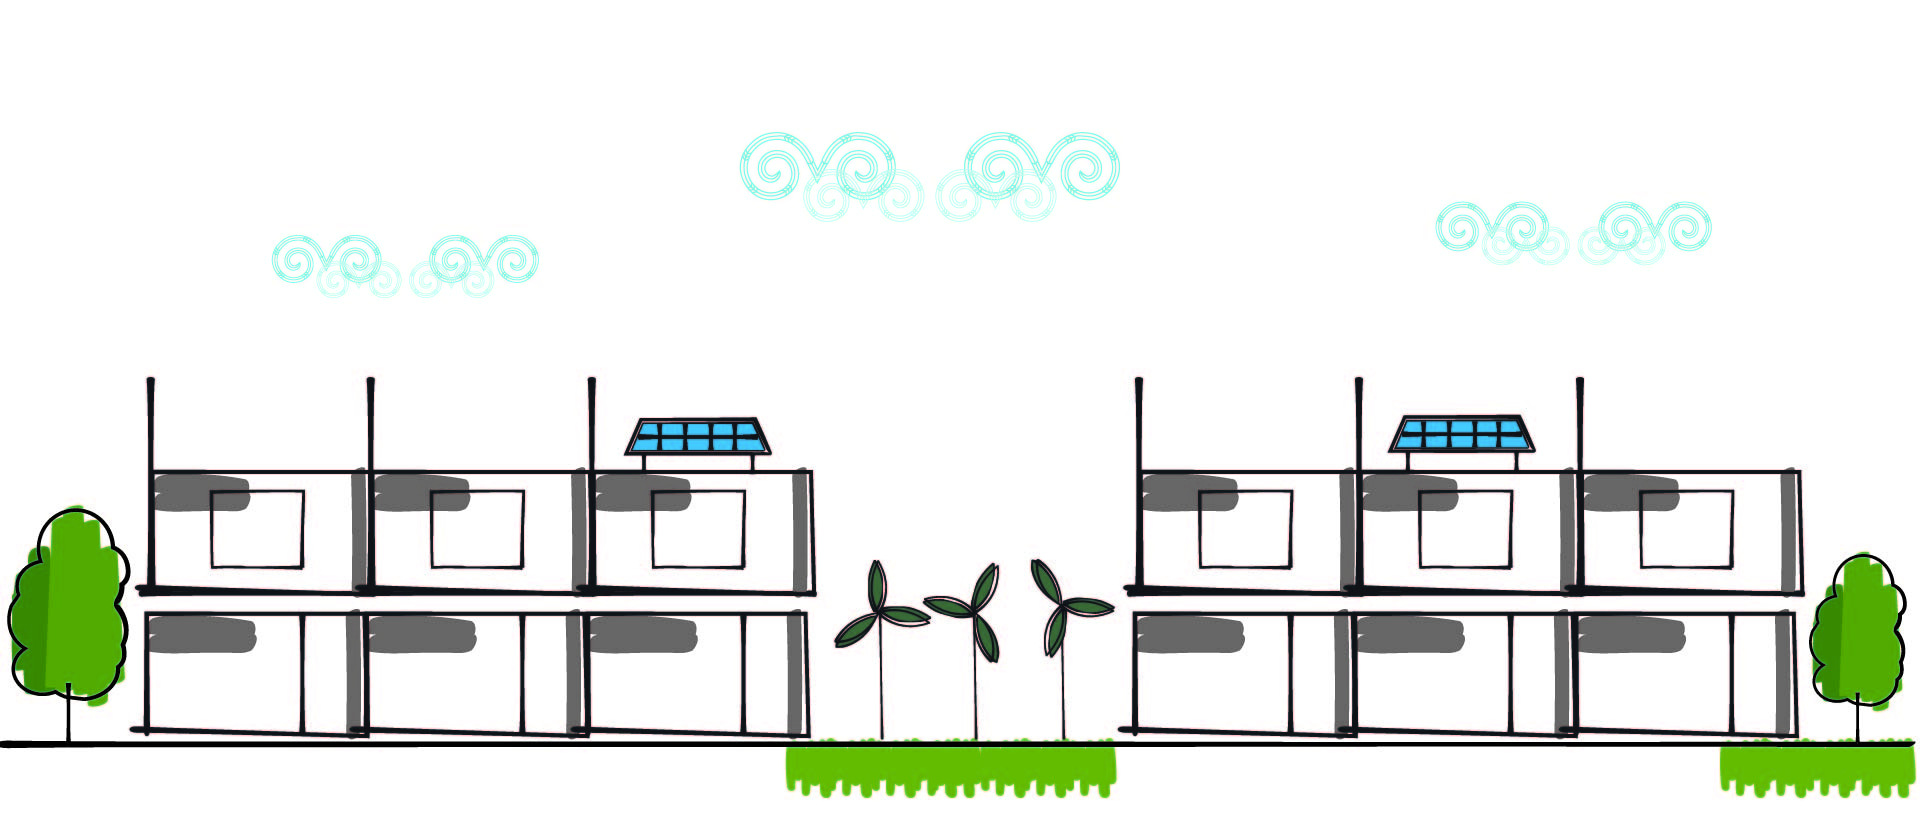 Illustration of two-storey buildings with solar panels on the roofs and wind turbines between the buildings.